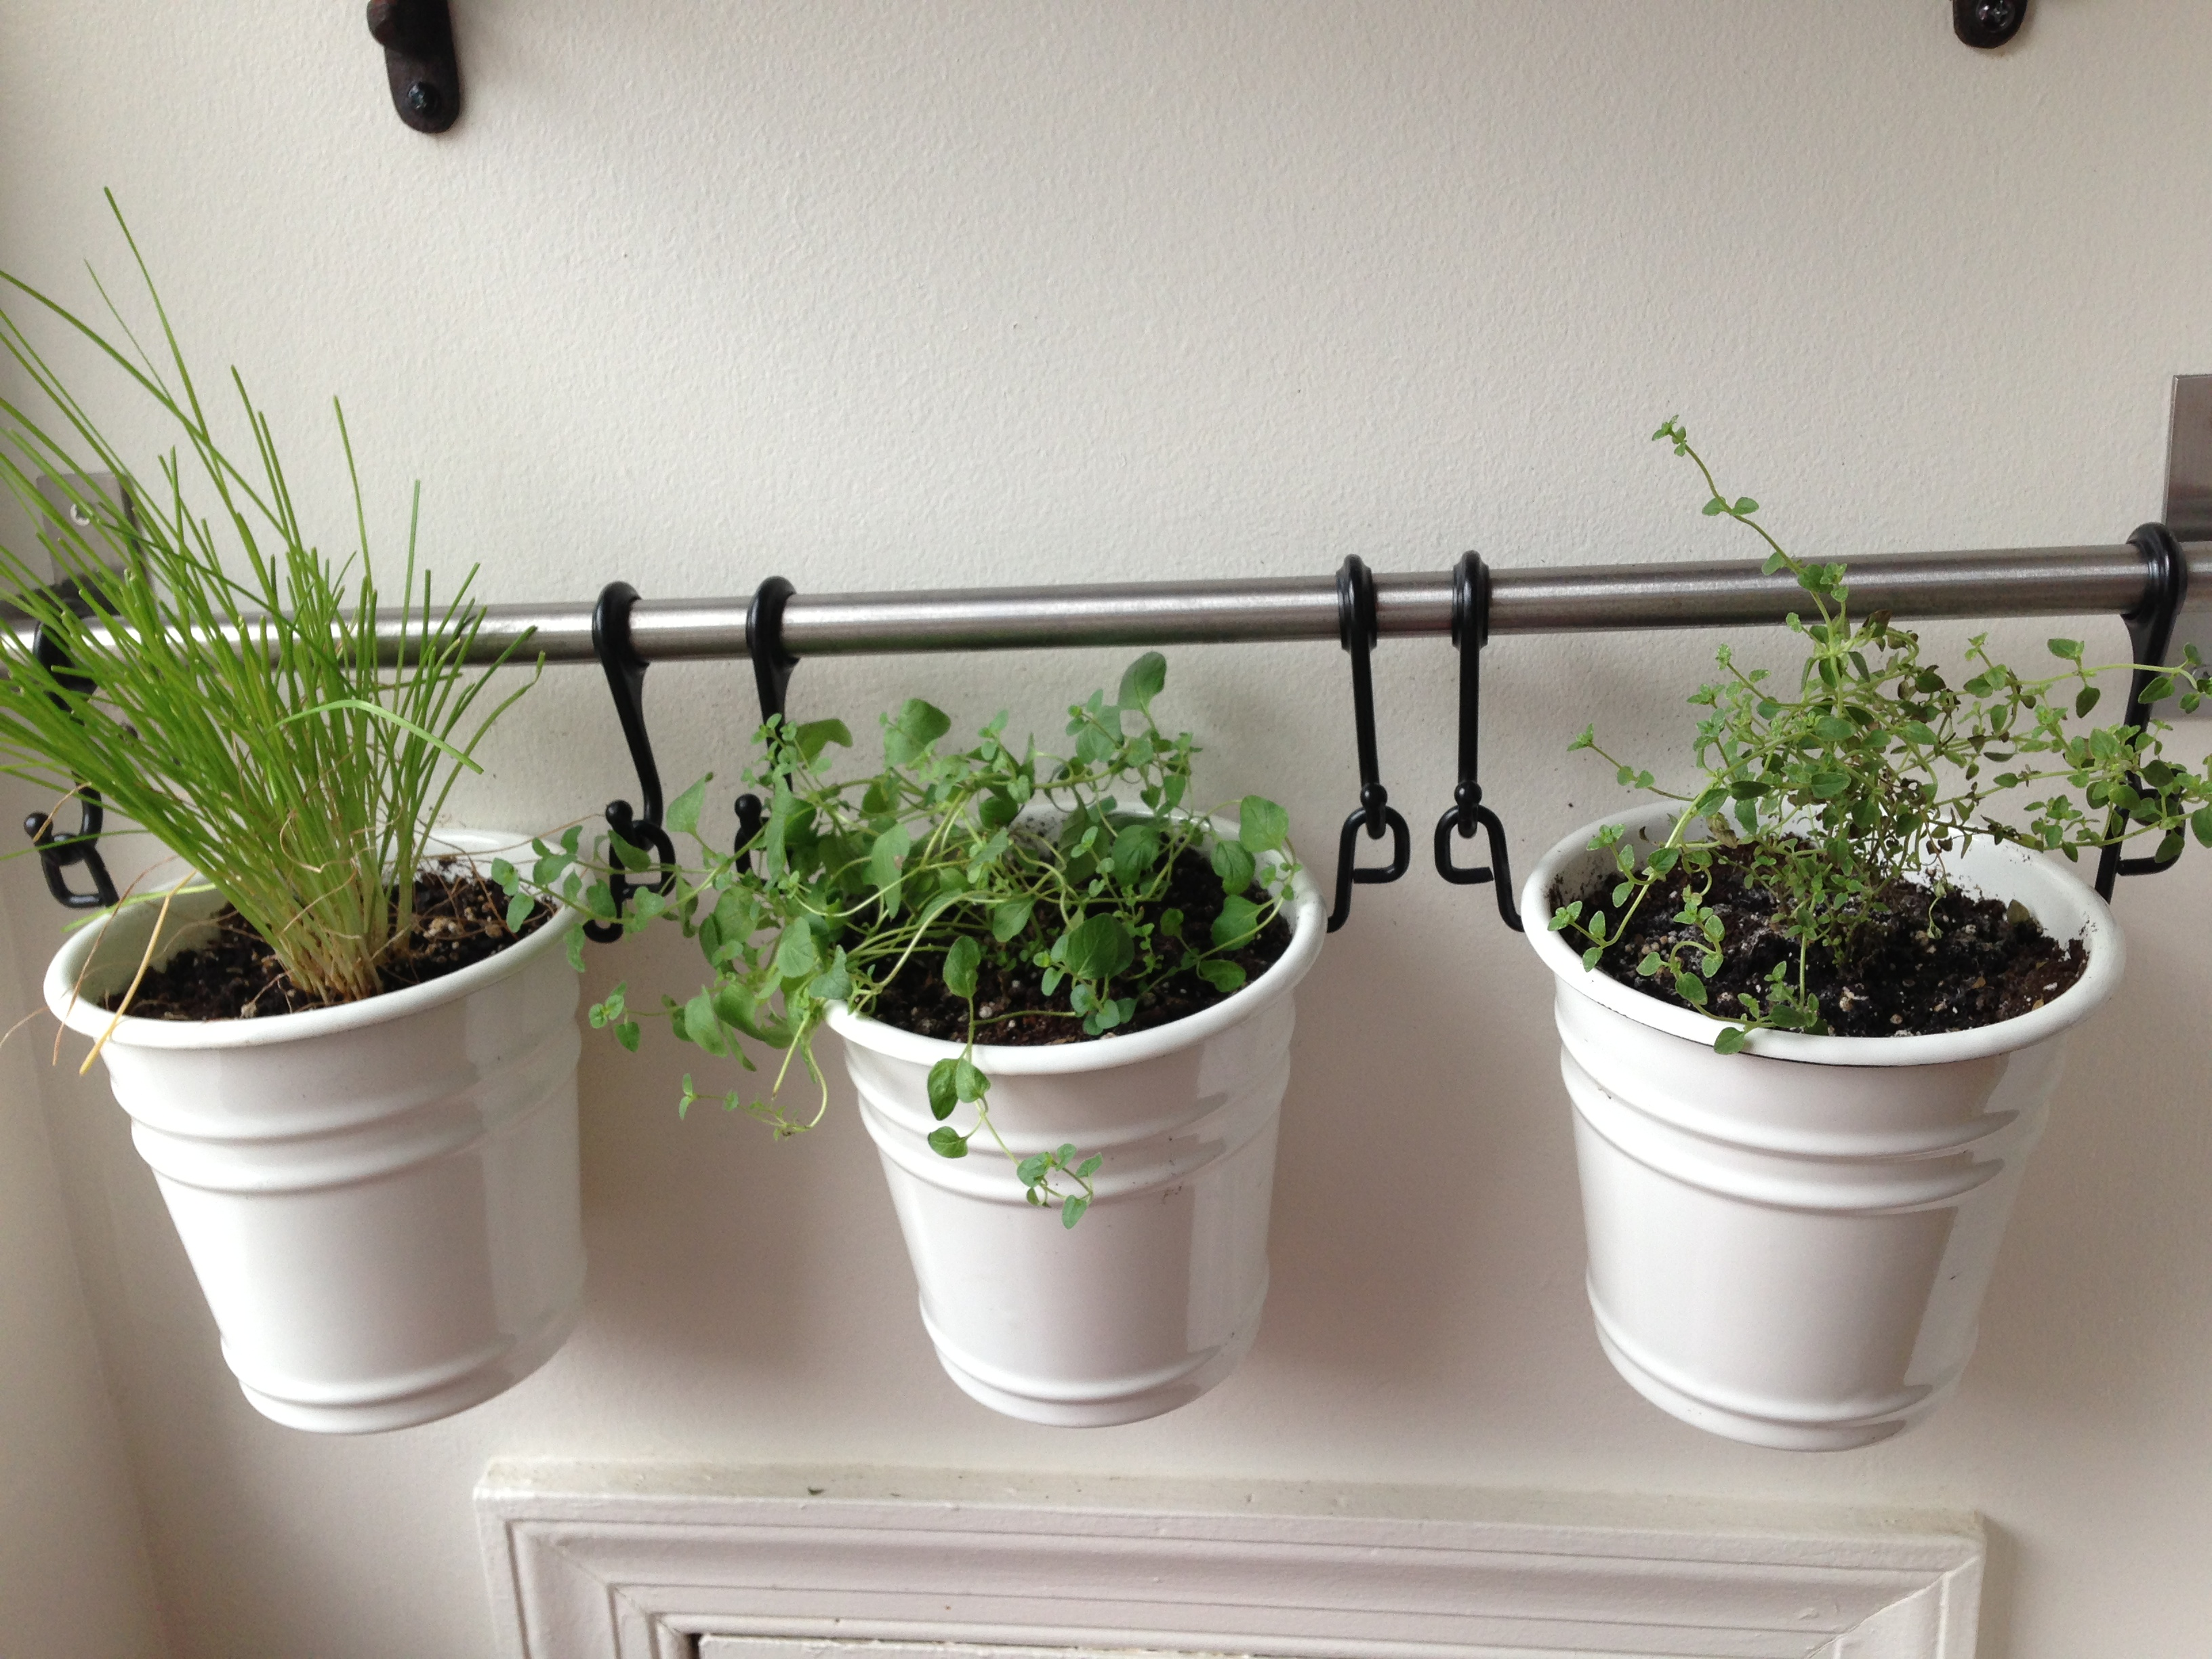 Simple Apartment Herb Garden Design In The Interior With Vintage White Pots And Iron Pole Hanger